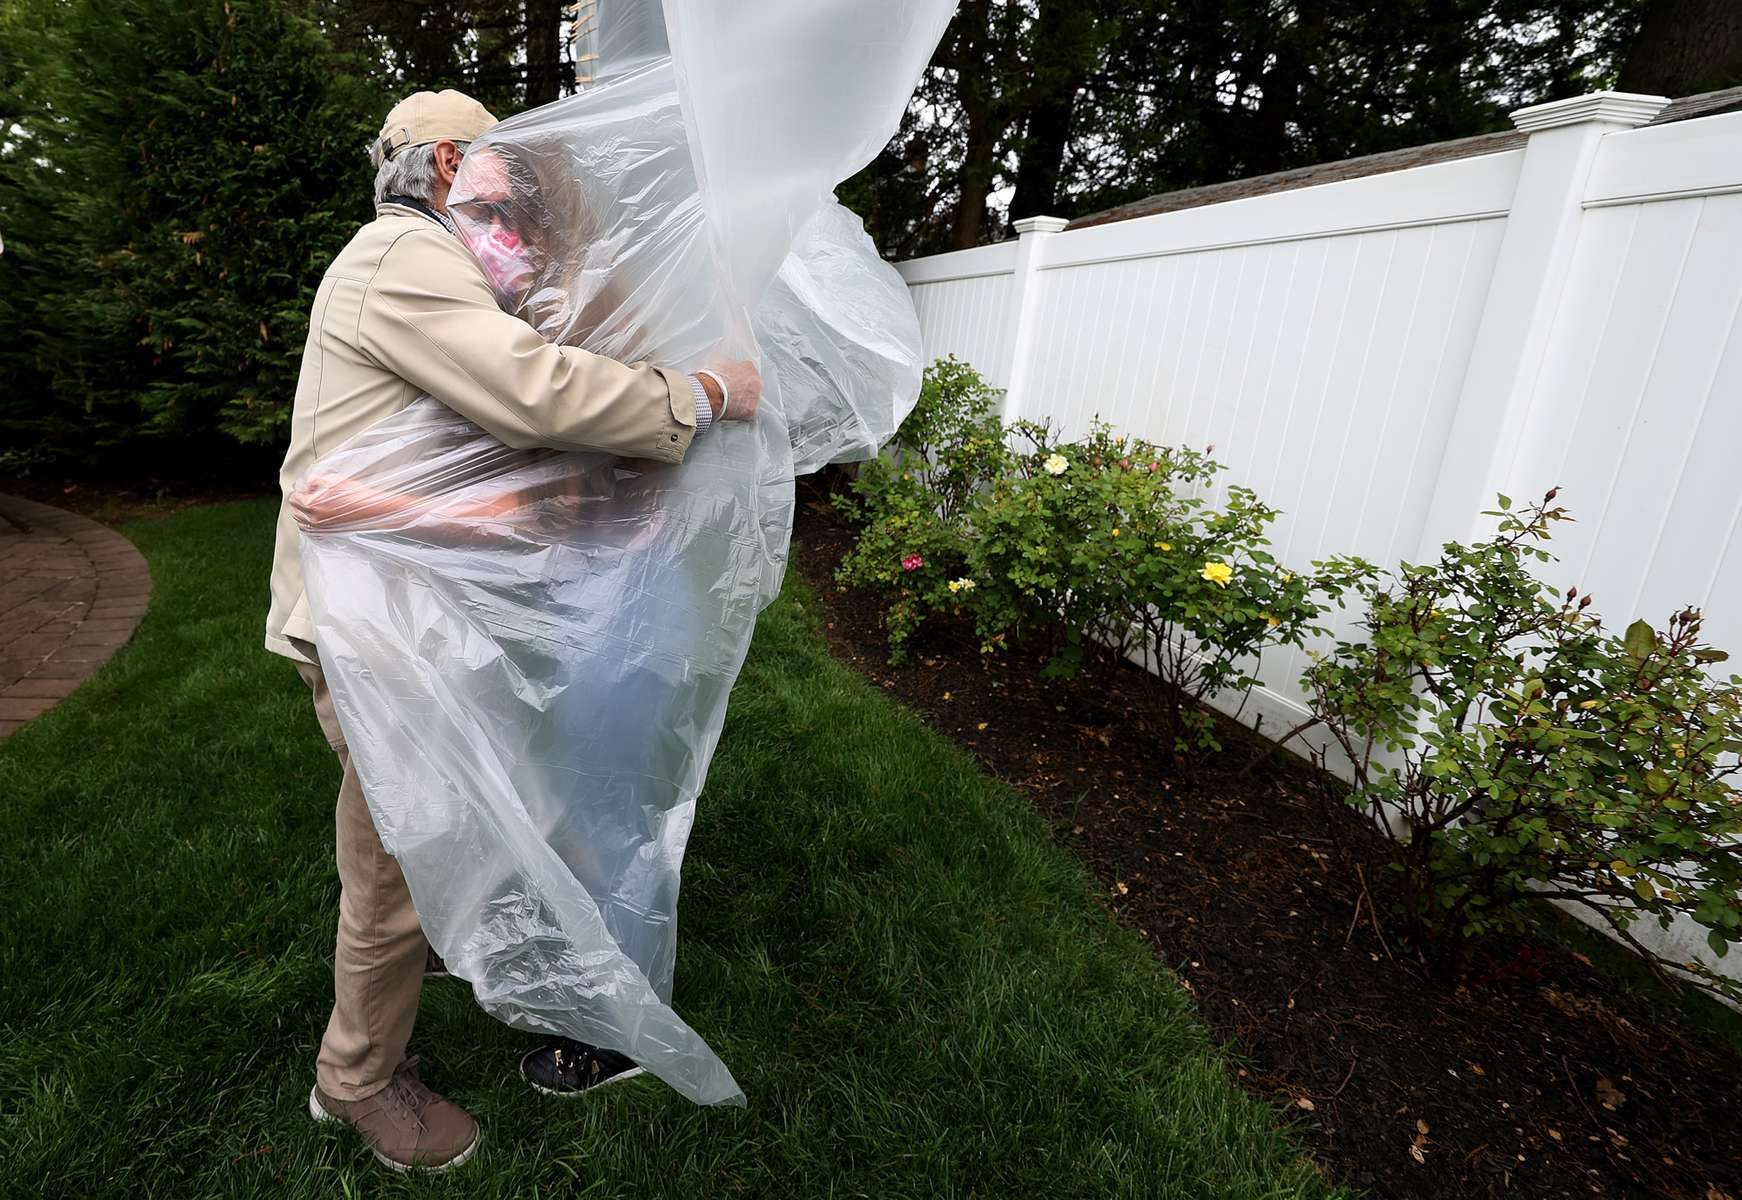 Julia Sileo hugs her Grandfather Domenik Sileo through a plastic drop cloth hung up on a homemade clothes line during Memorial Day Weekend on May 24, 2020 in Wantagh, New York.  It is the first time they have had physical contact of any kind since the coronavirus COVID-19 pandemic lockdown started in late February.